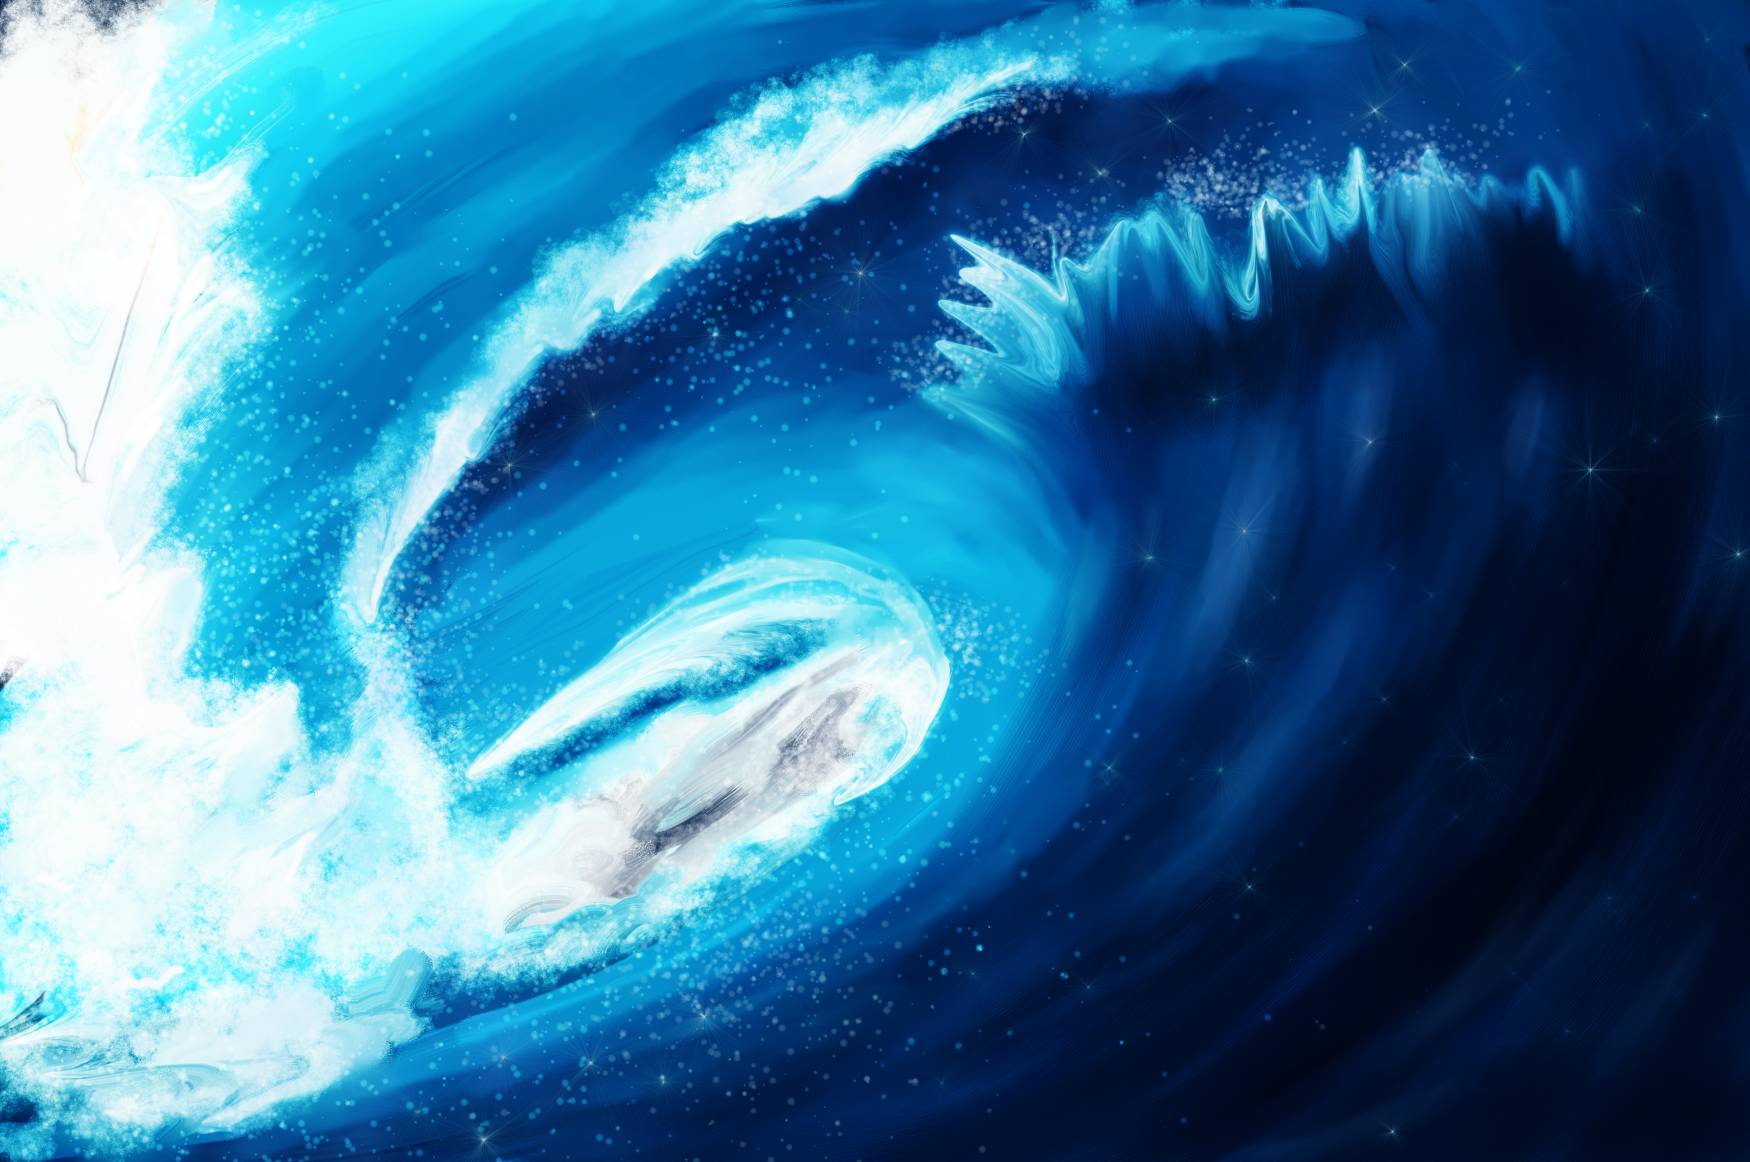 The magical wave